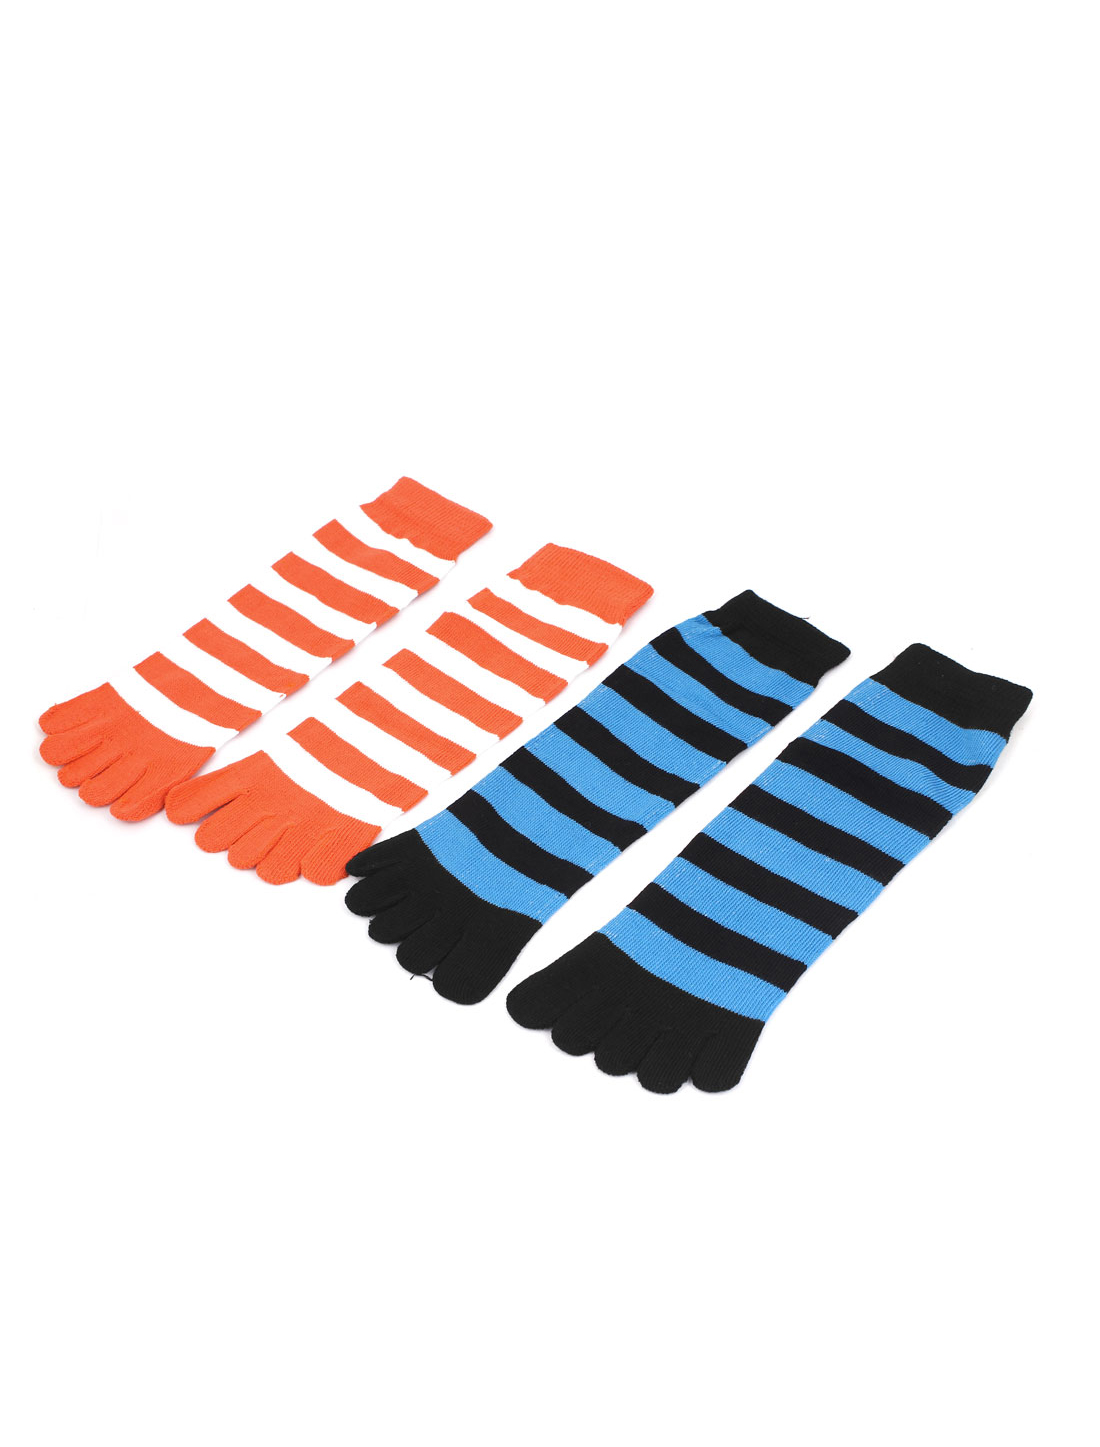 Women Stripes Pattern Stretchy Ankle Length Five Finger Toe Socks 2 Pairs